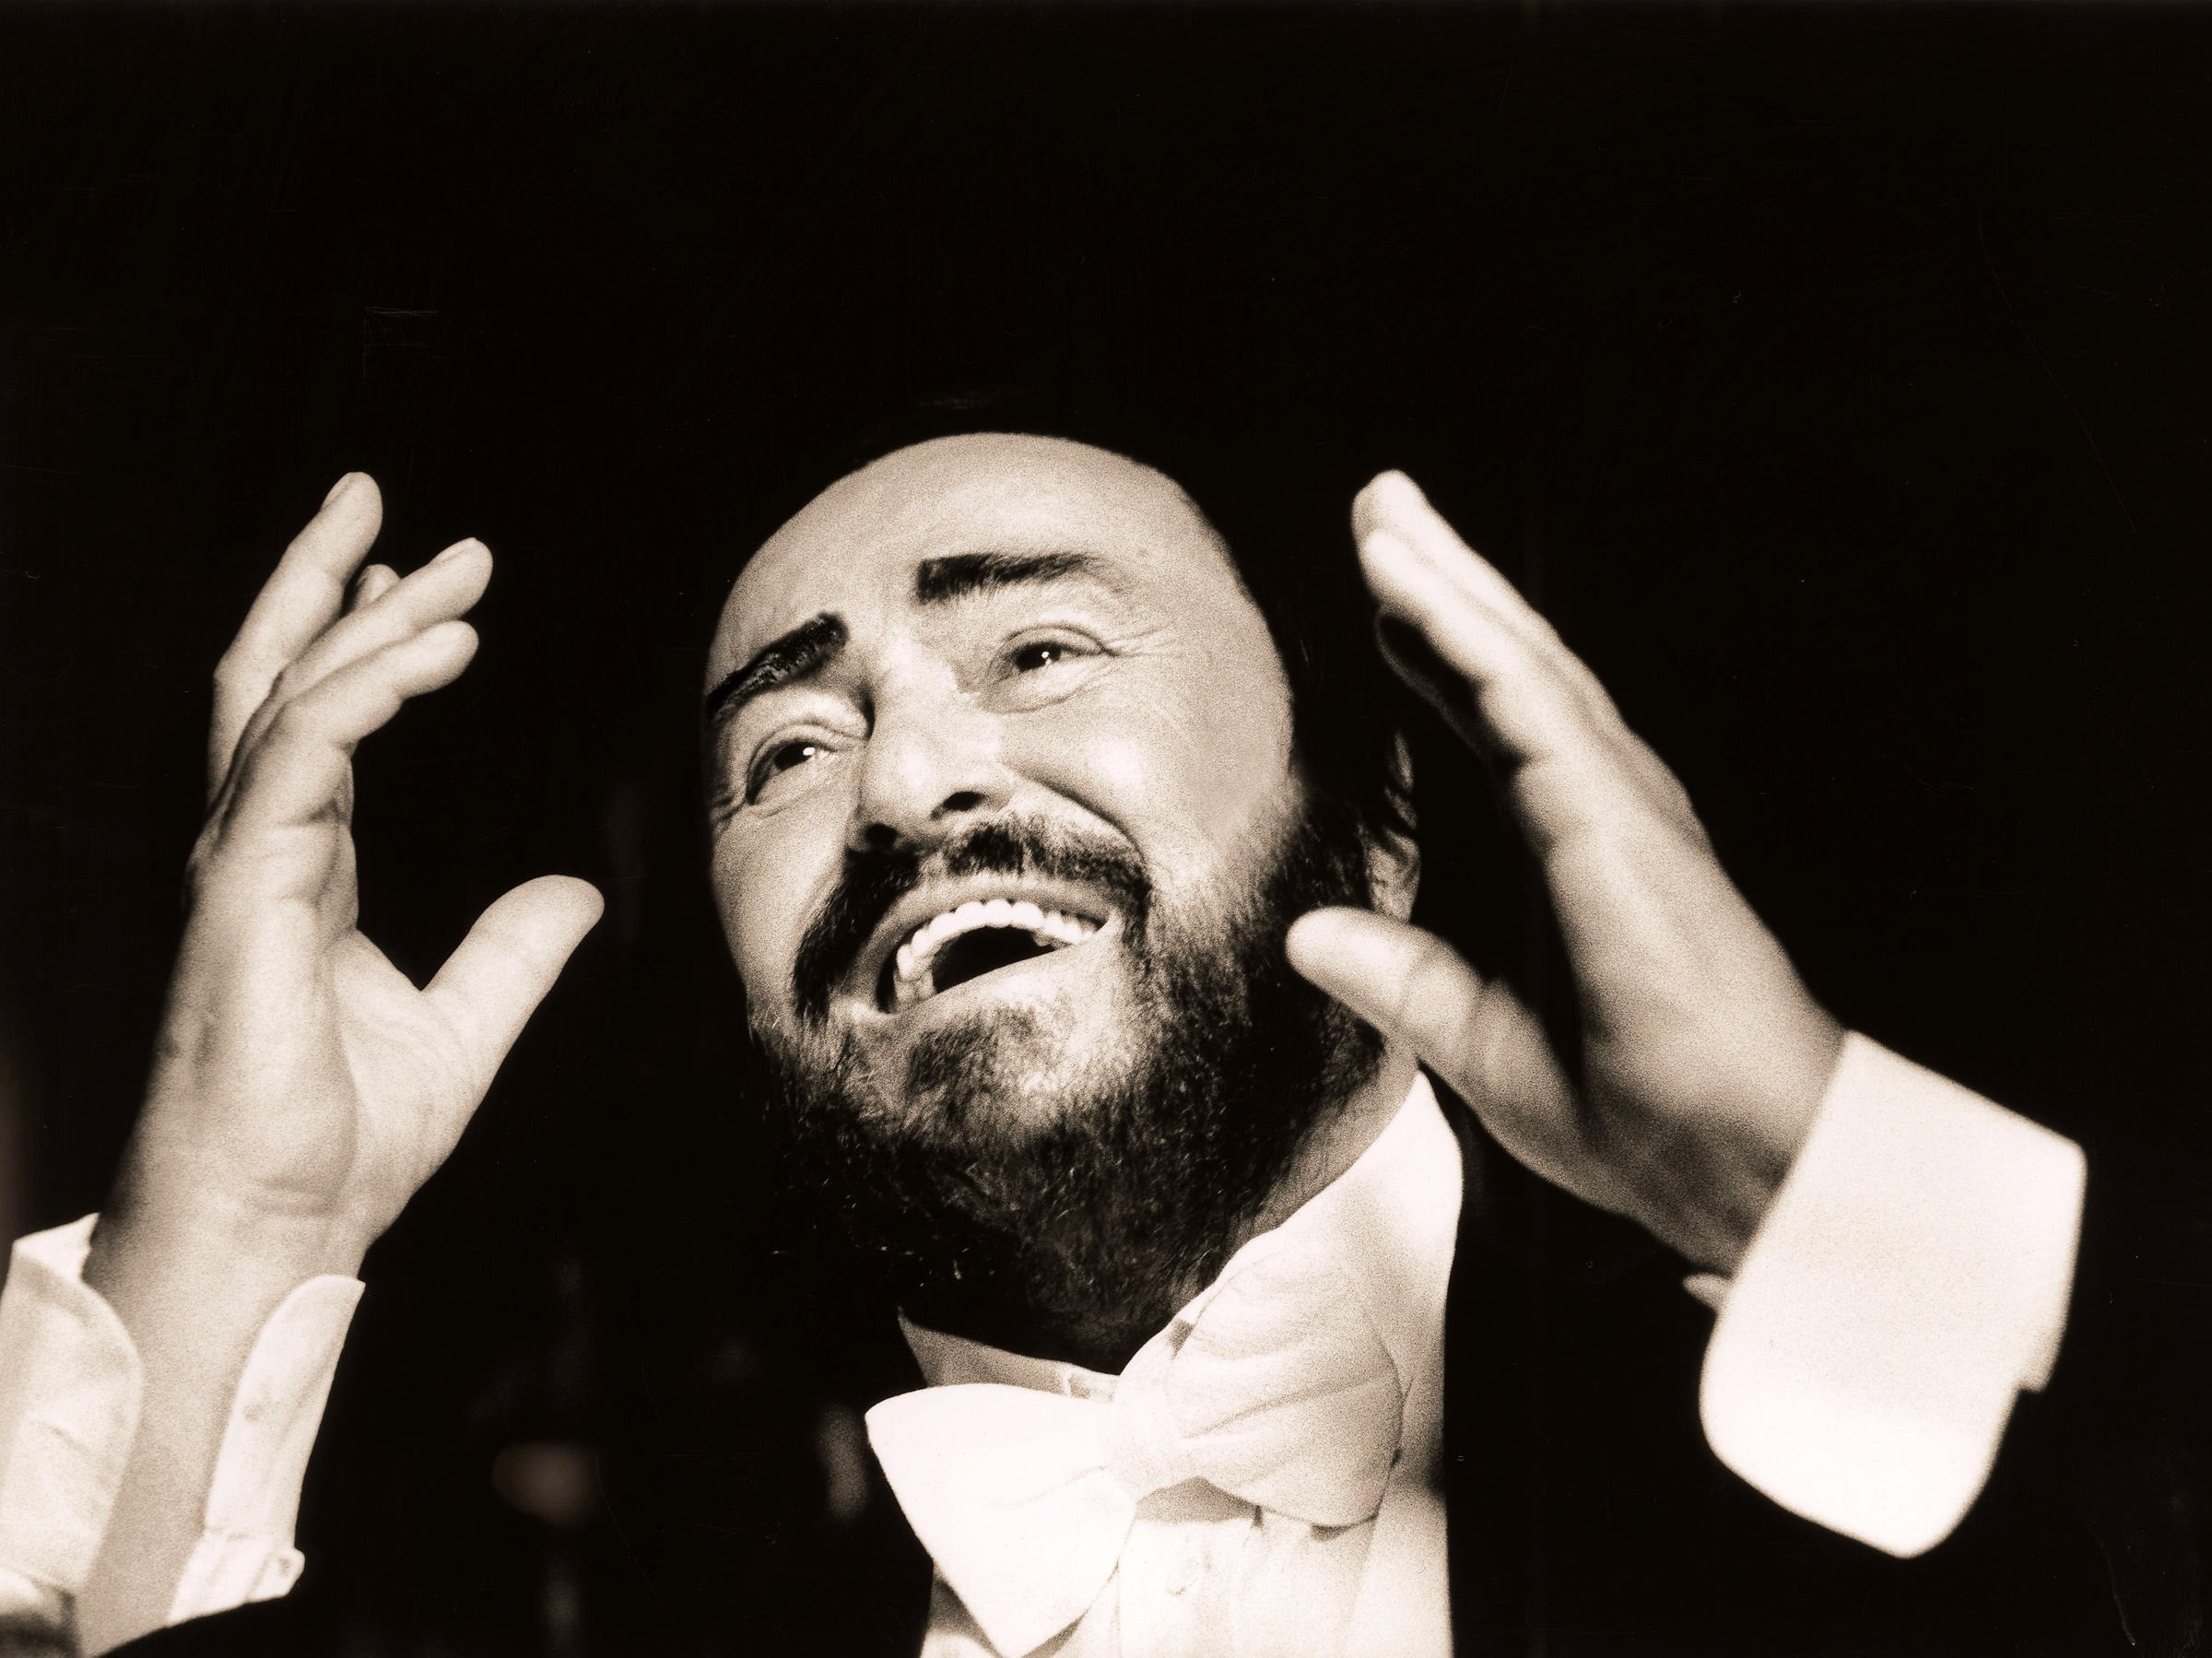 PAVAROTTI. HIS TALENT, HIS MUSIC, HIS LIFE